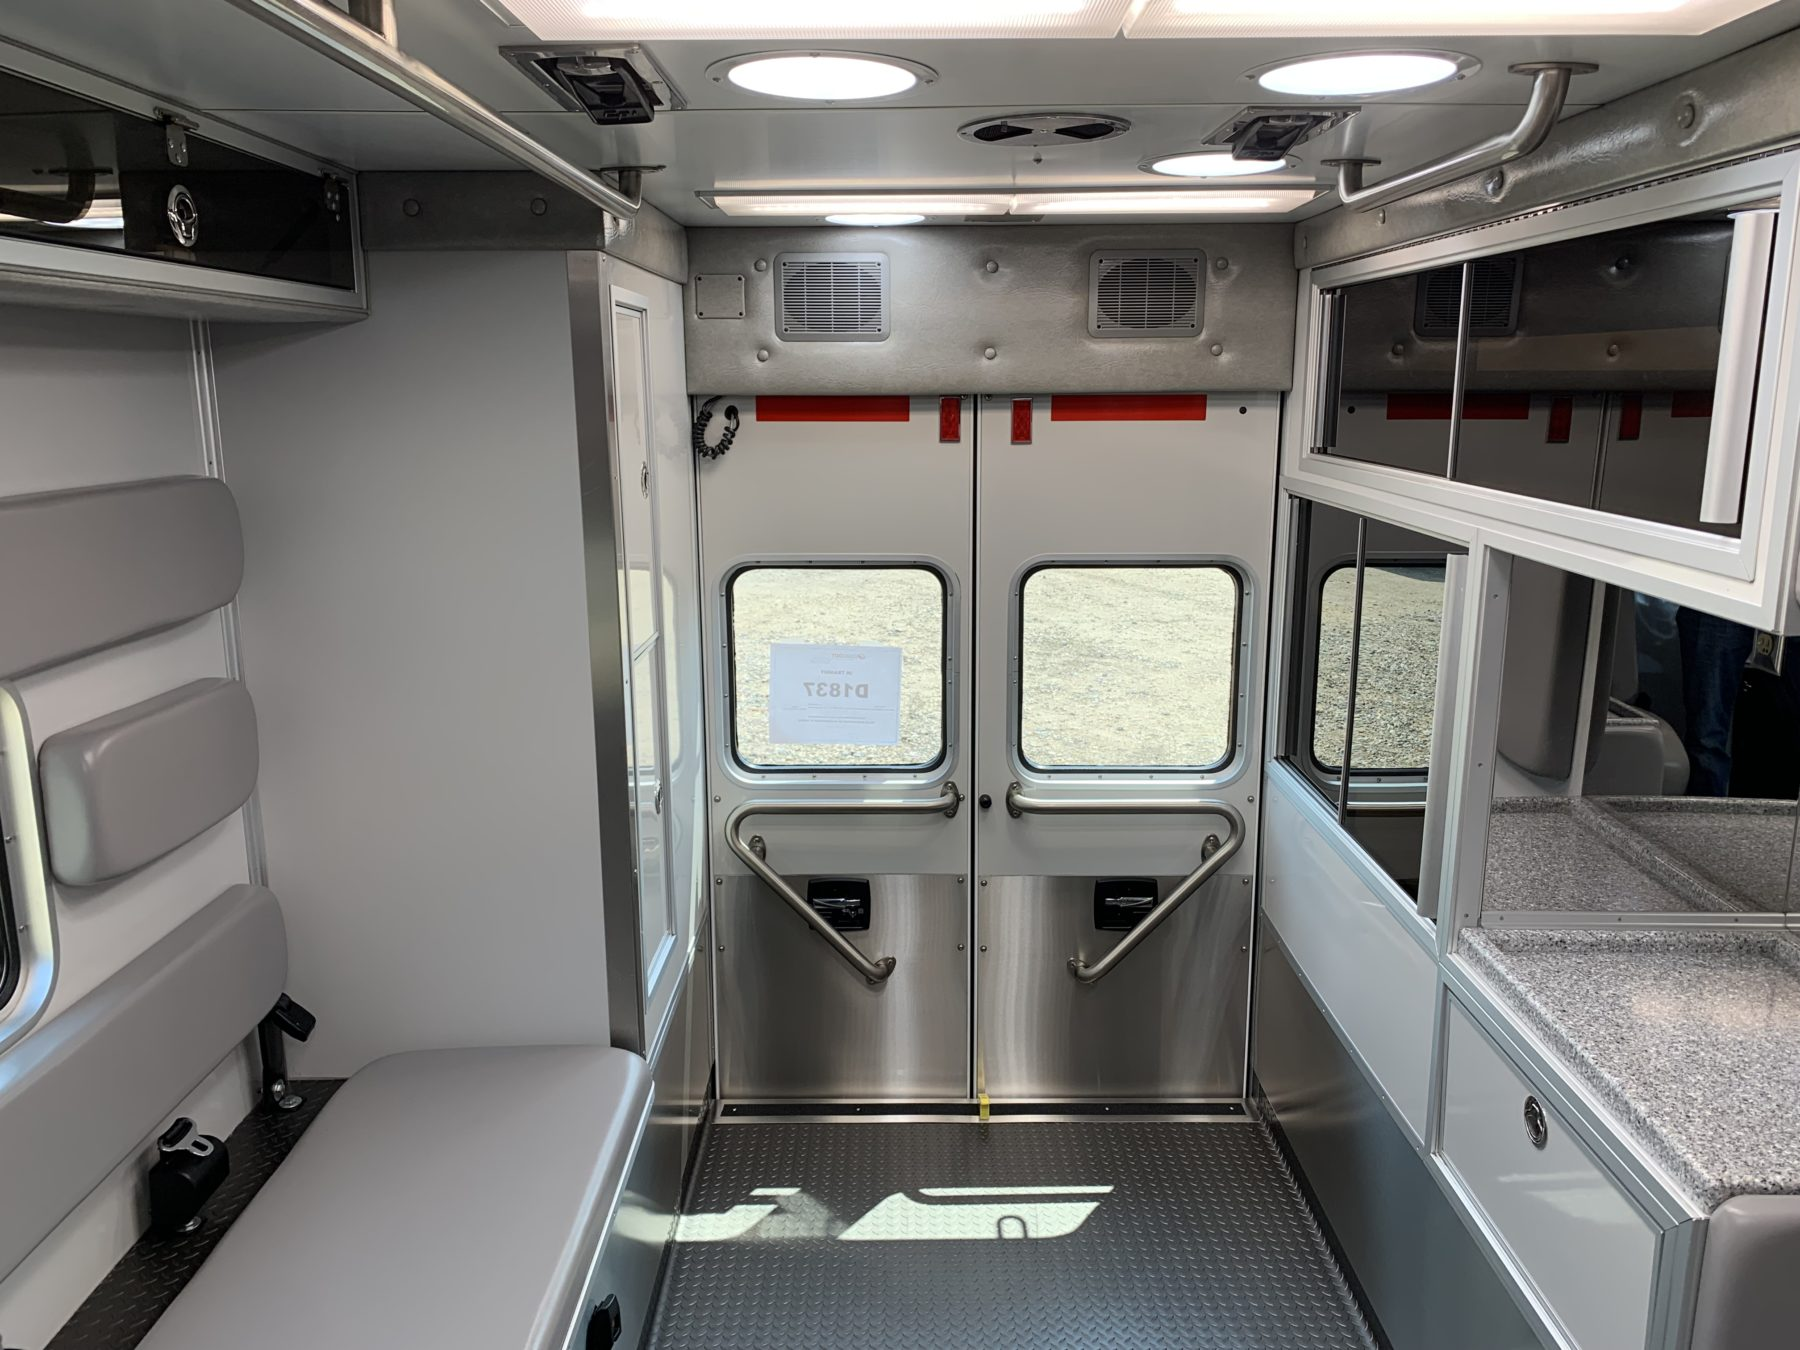 2021 Ram 4500 4x4 Heavy Duty Ambulance For Sale – Picture 15